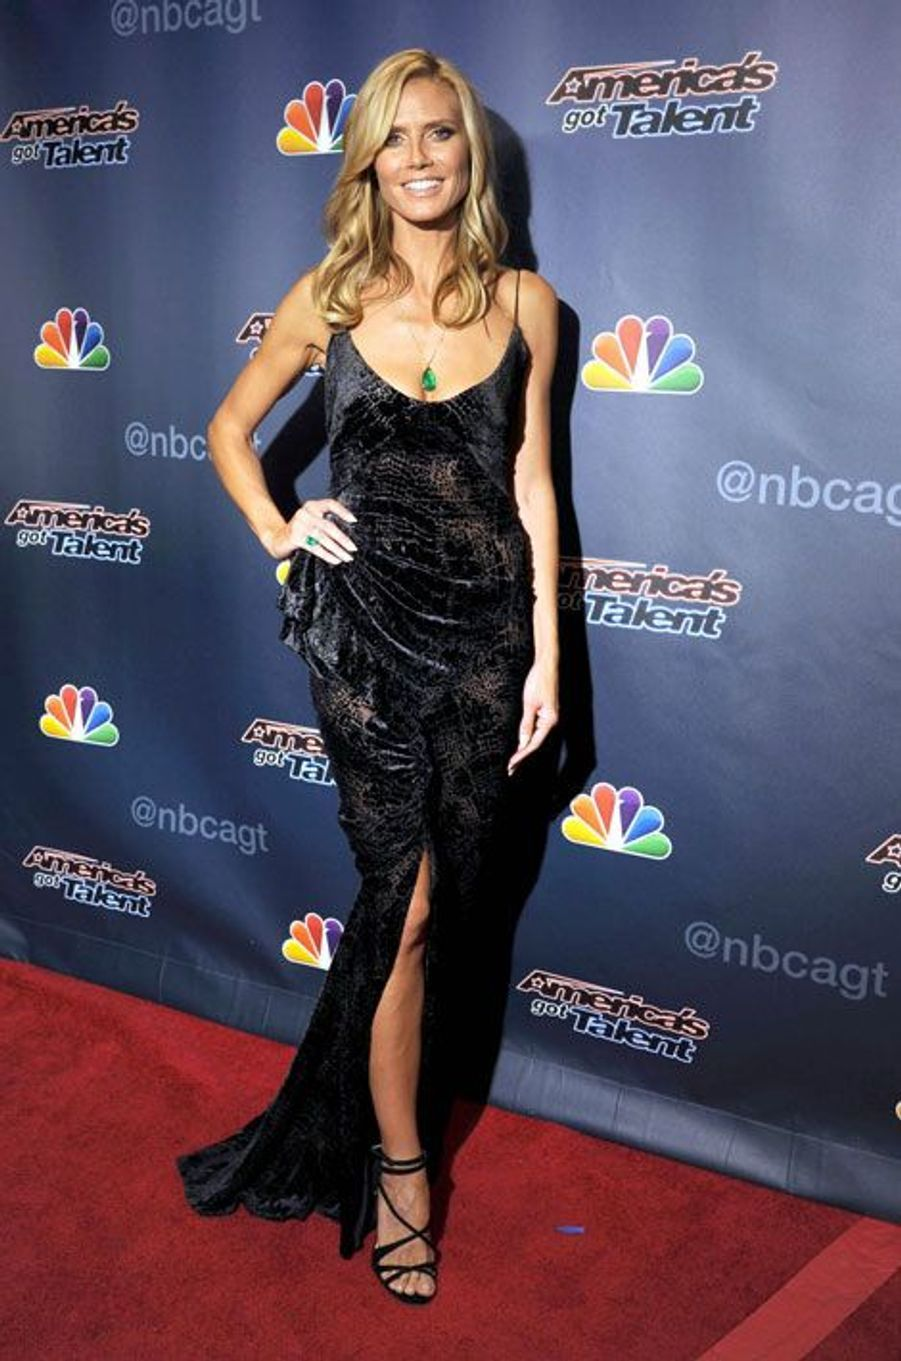 Le top Heidi Klum en Zac Posen, lors de la finale de l'émission America's Got Talent à New York, le 17 septembre 2014